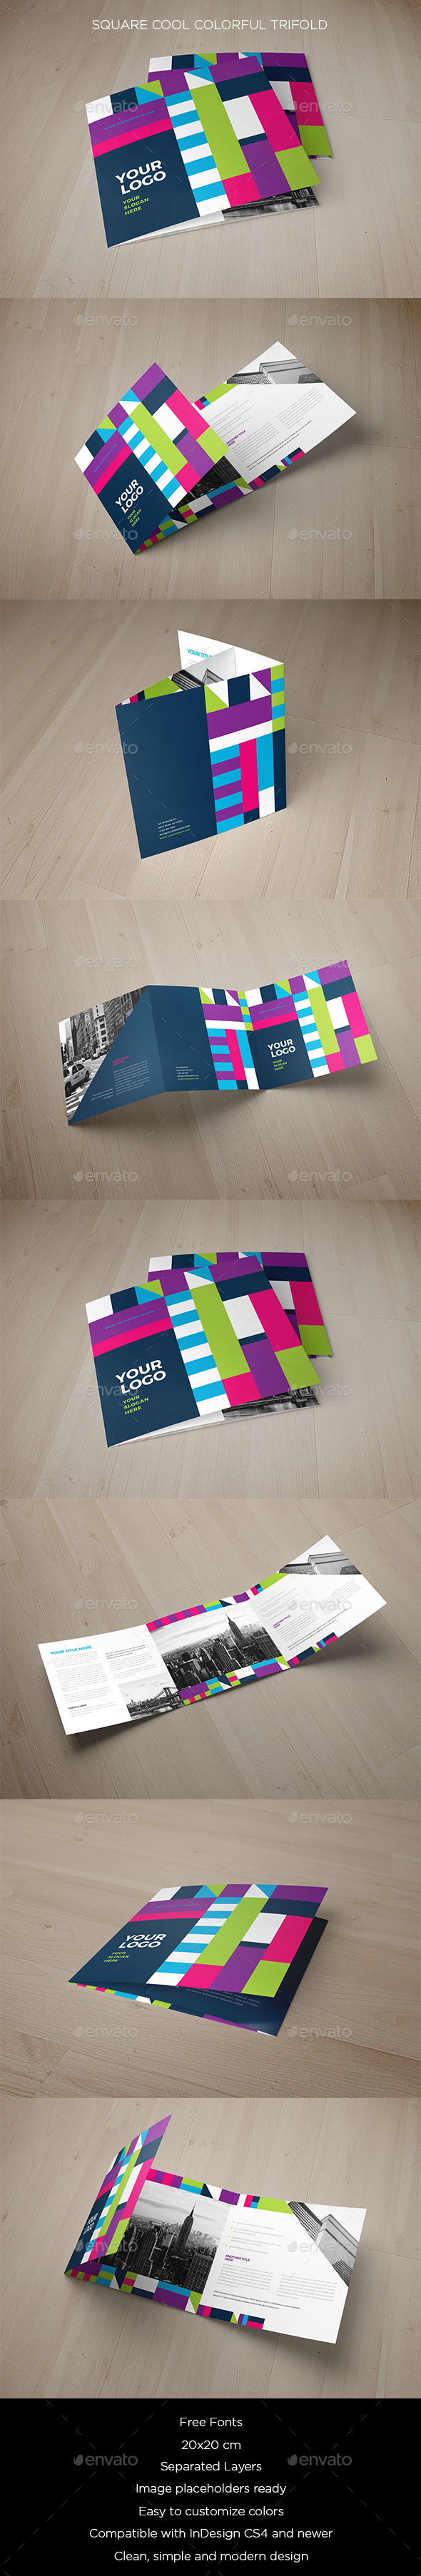 Square Cool Colorful Trifold - Brochures Print Templates